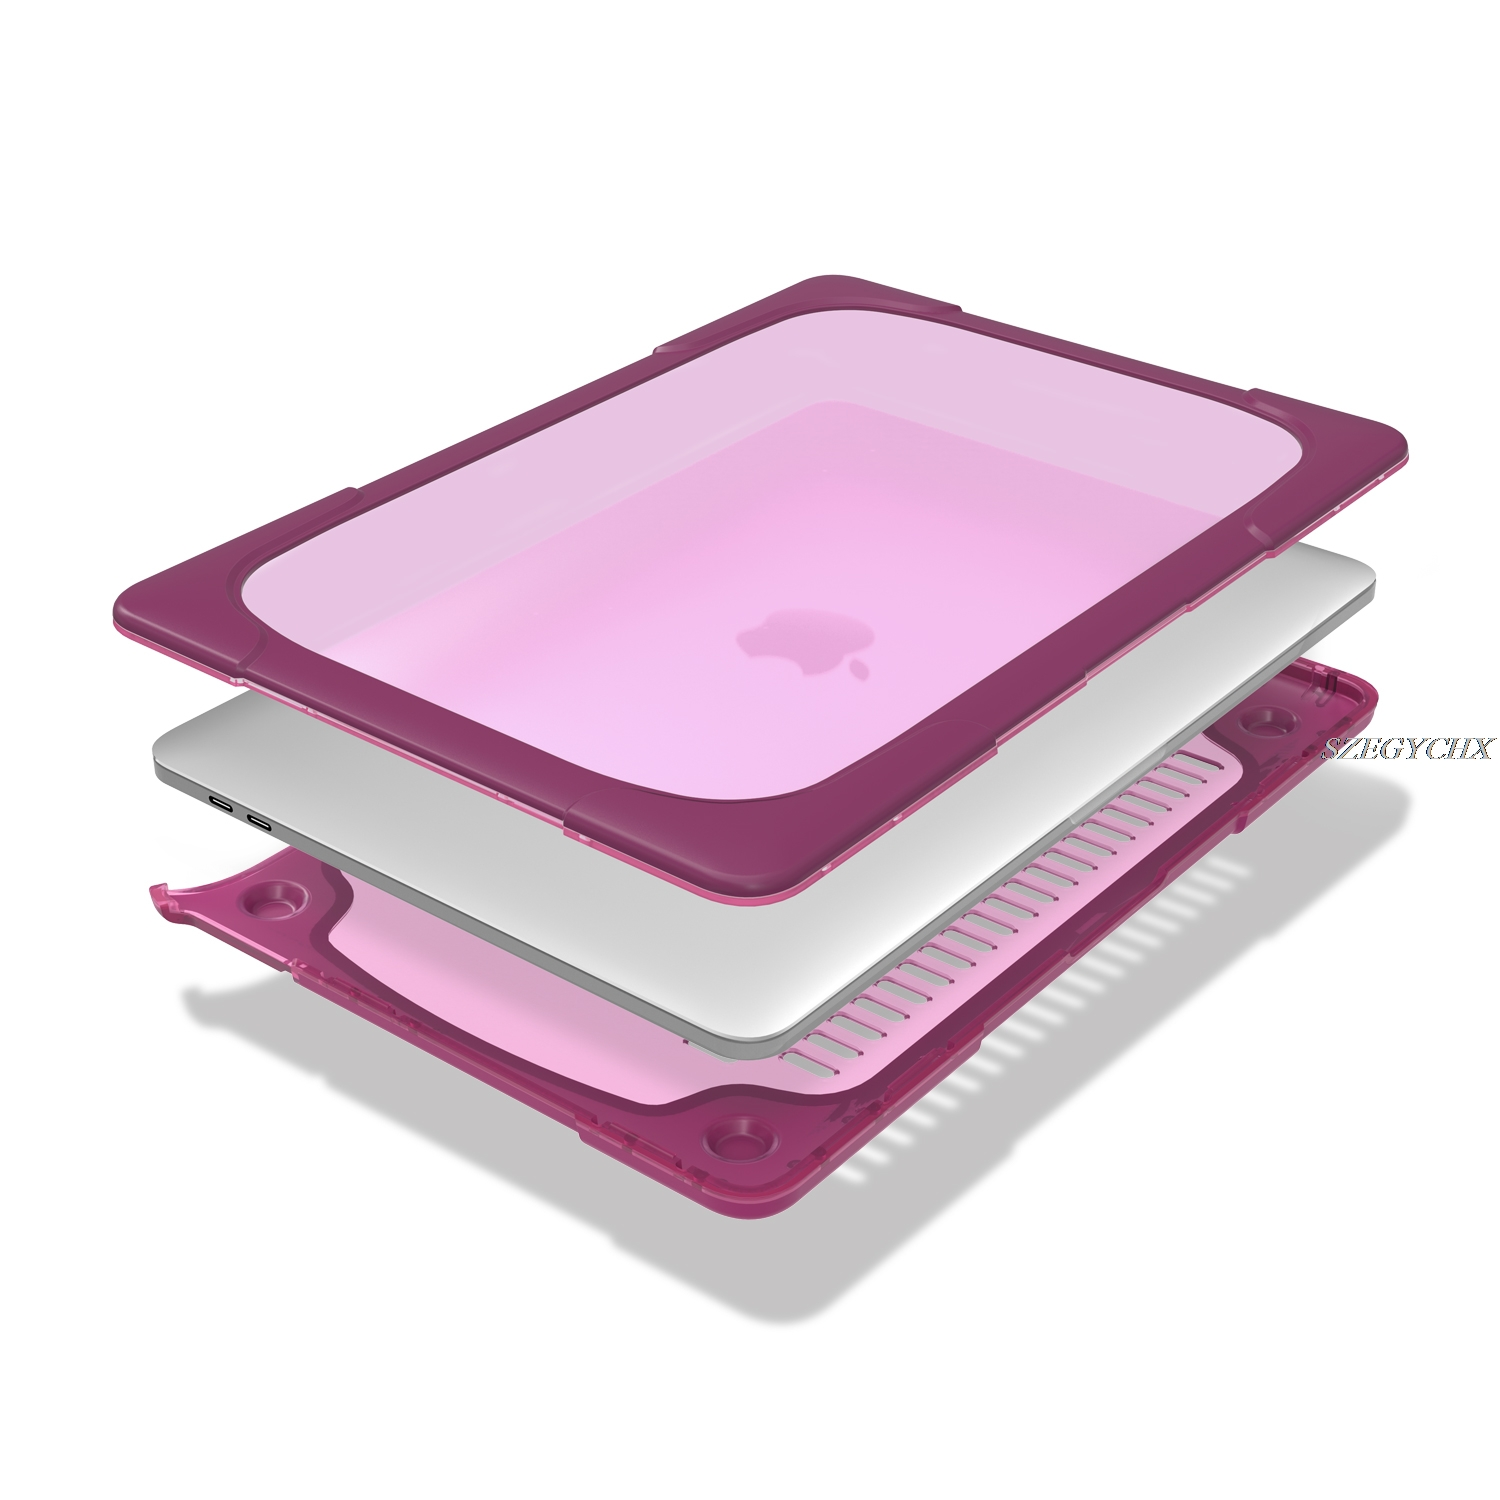 Dust Shock Proof Hard Ultra Thin Stand Laptop Case for Macbook 12 Air - Նոթբուքի պարագաներ - Լուսանկար 5